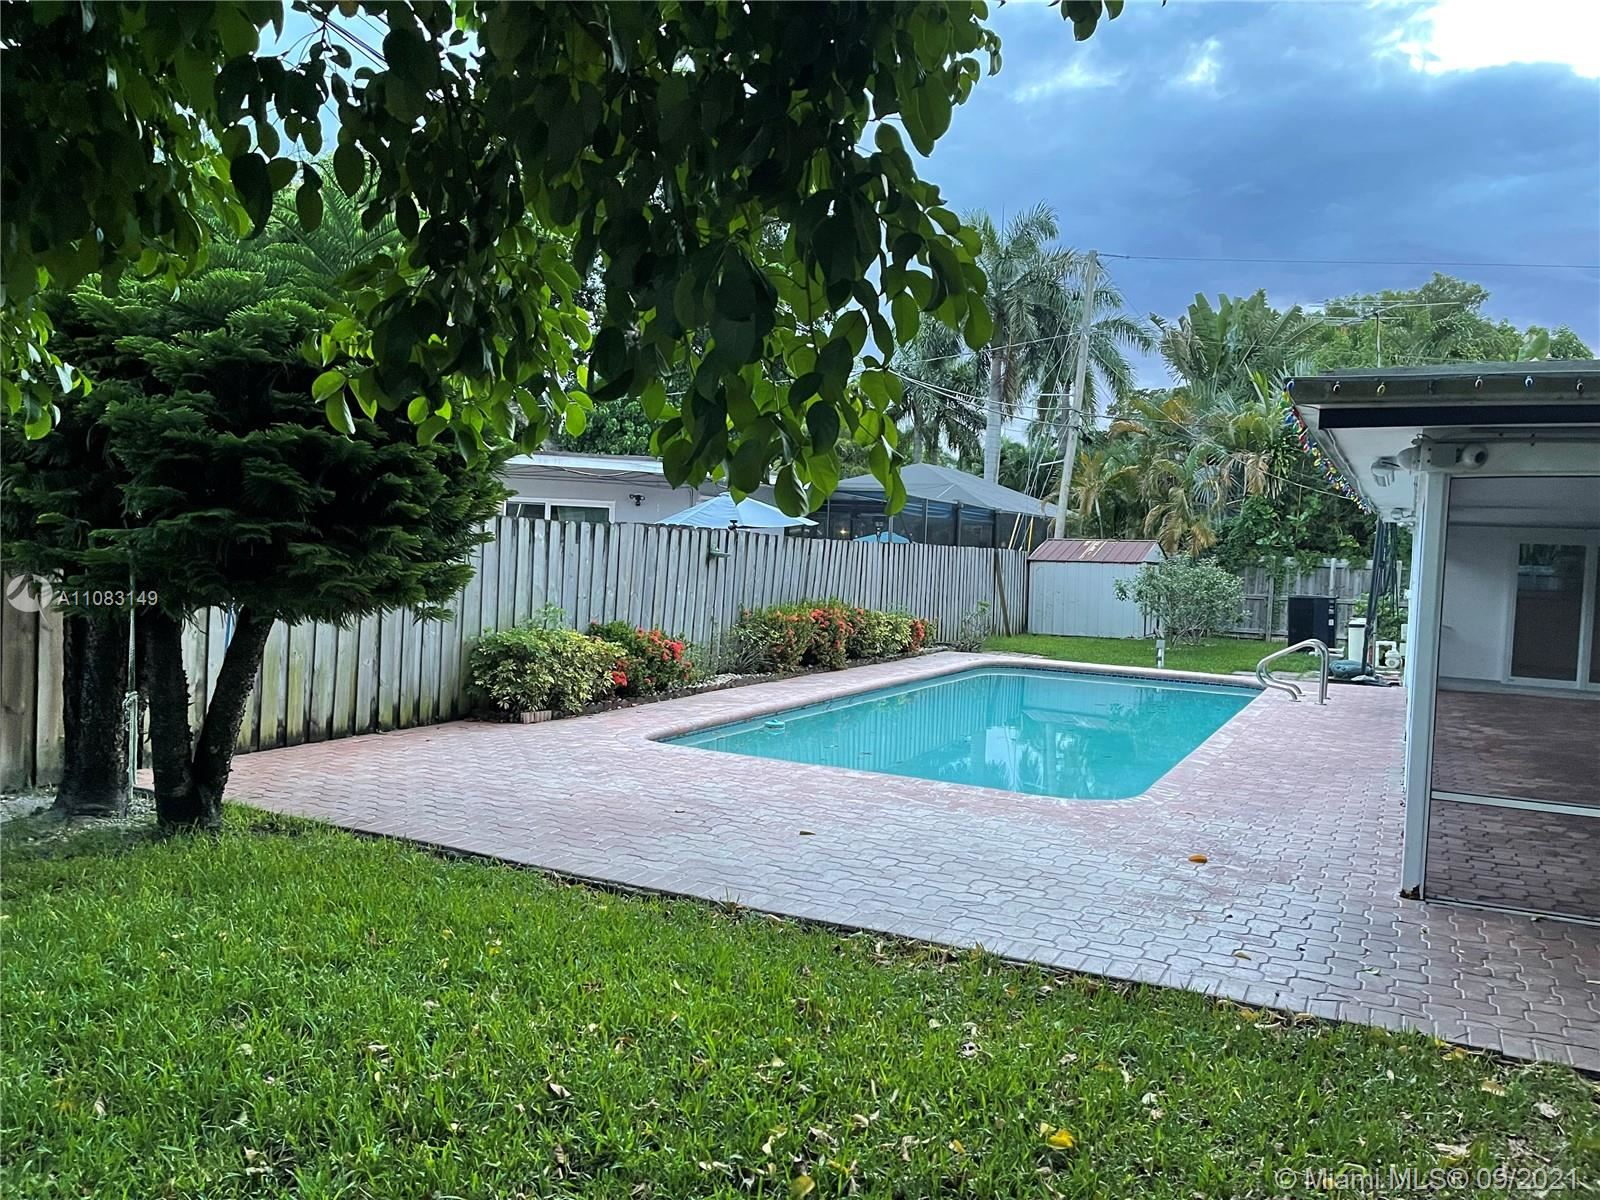 600 NW 22nd Ct, Wilton Manors, FL 33311 - #: A11083149